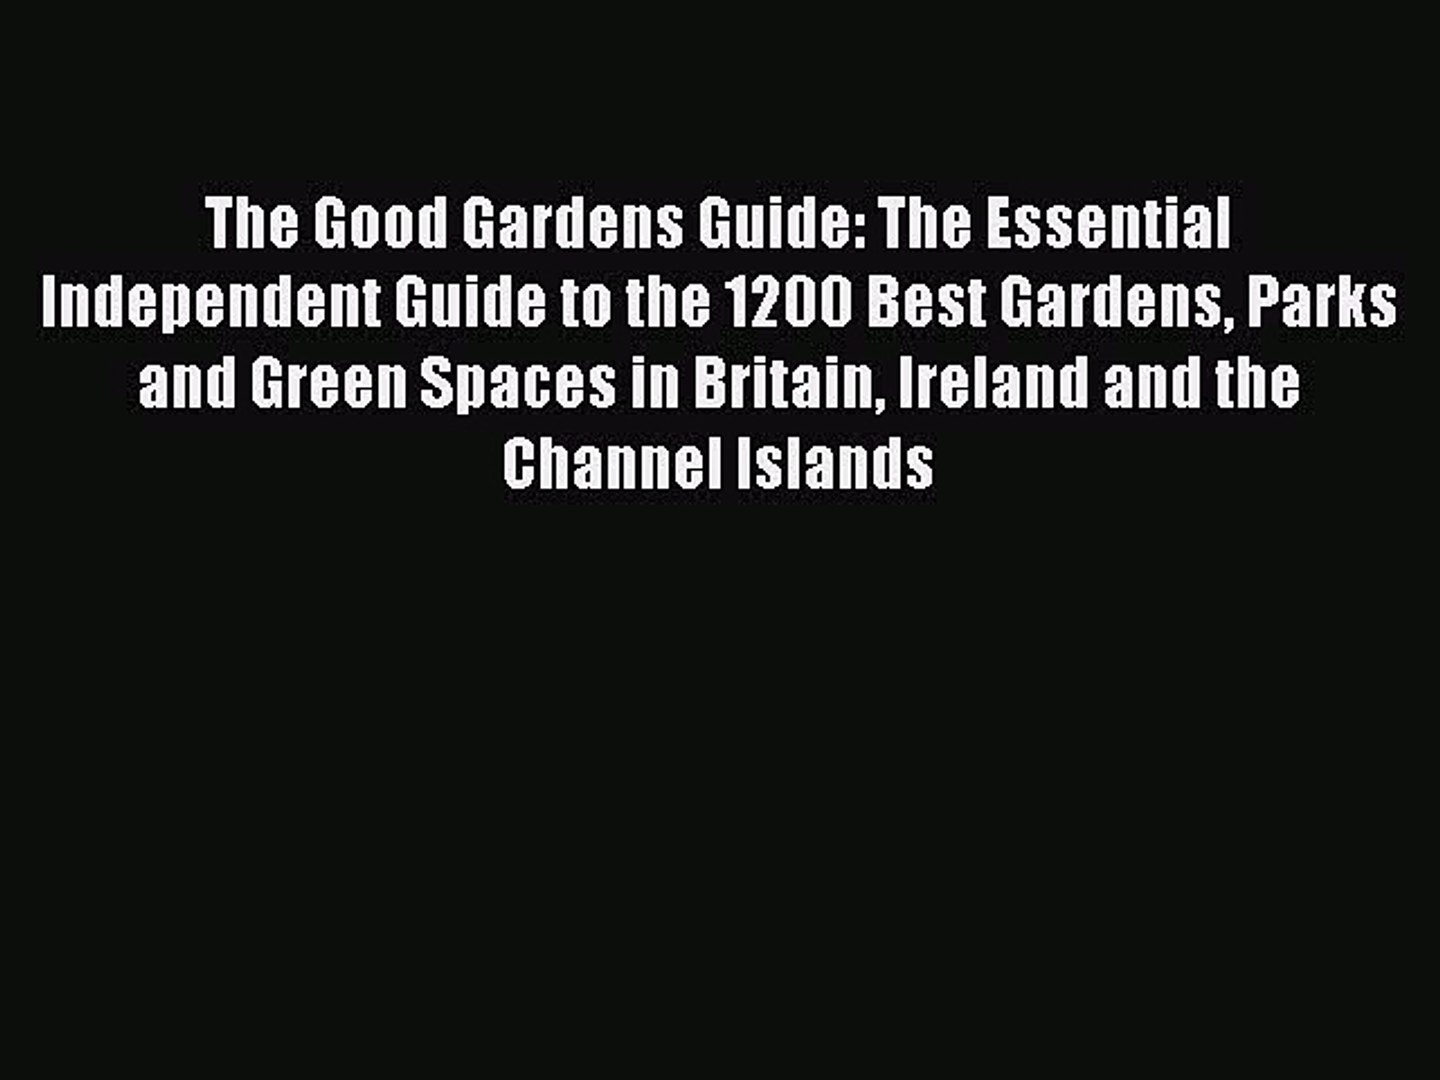 Read The Good Gardens Guide: The Essential Independent Guide to the 1200 Best Gardens Parks